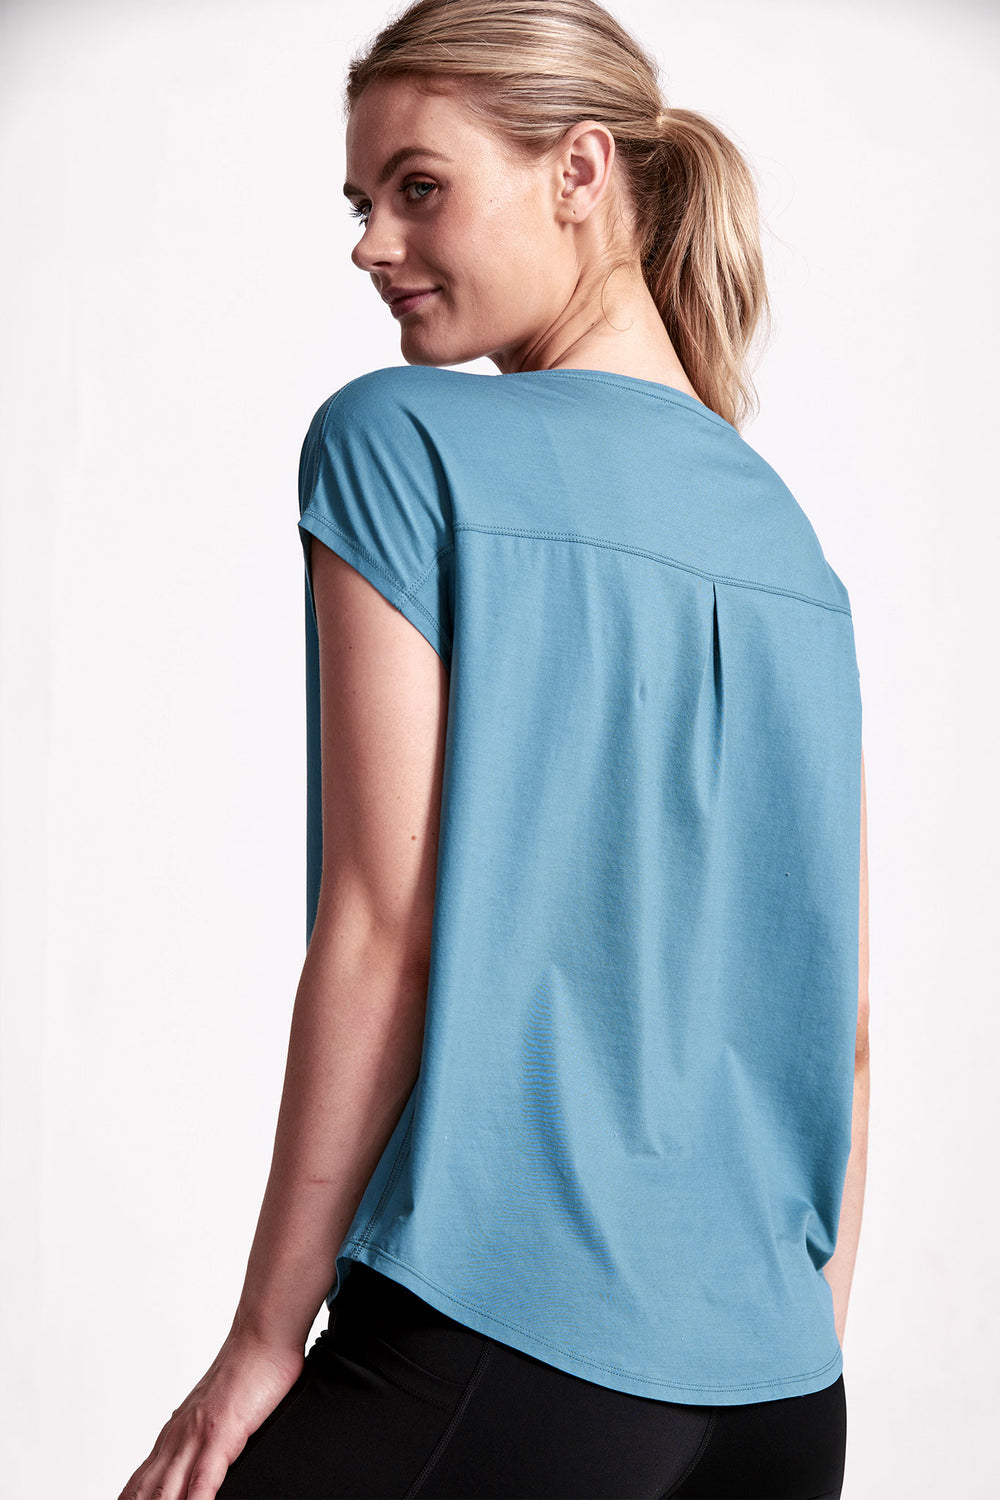 Deluxe Relaxed Tee - Mineral Teal